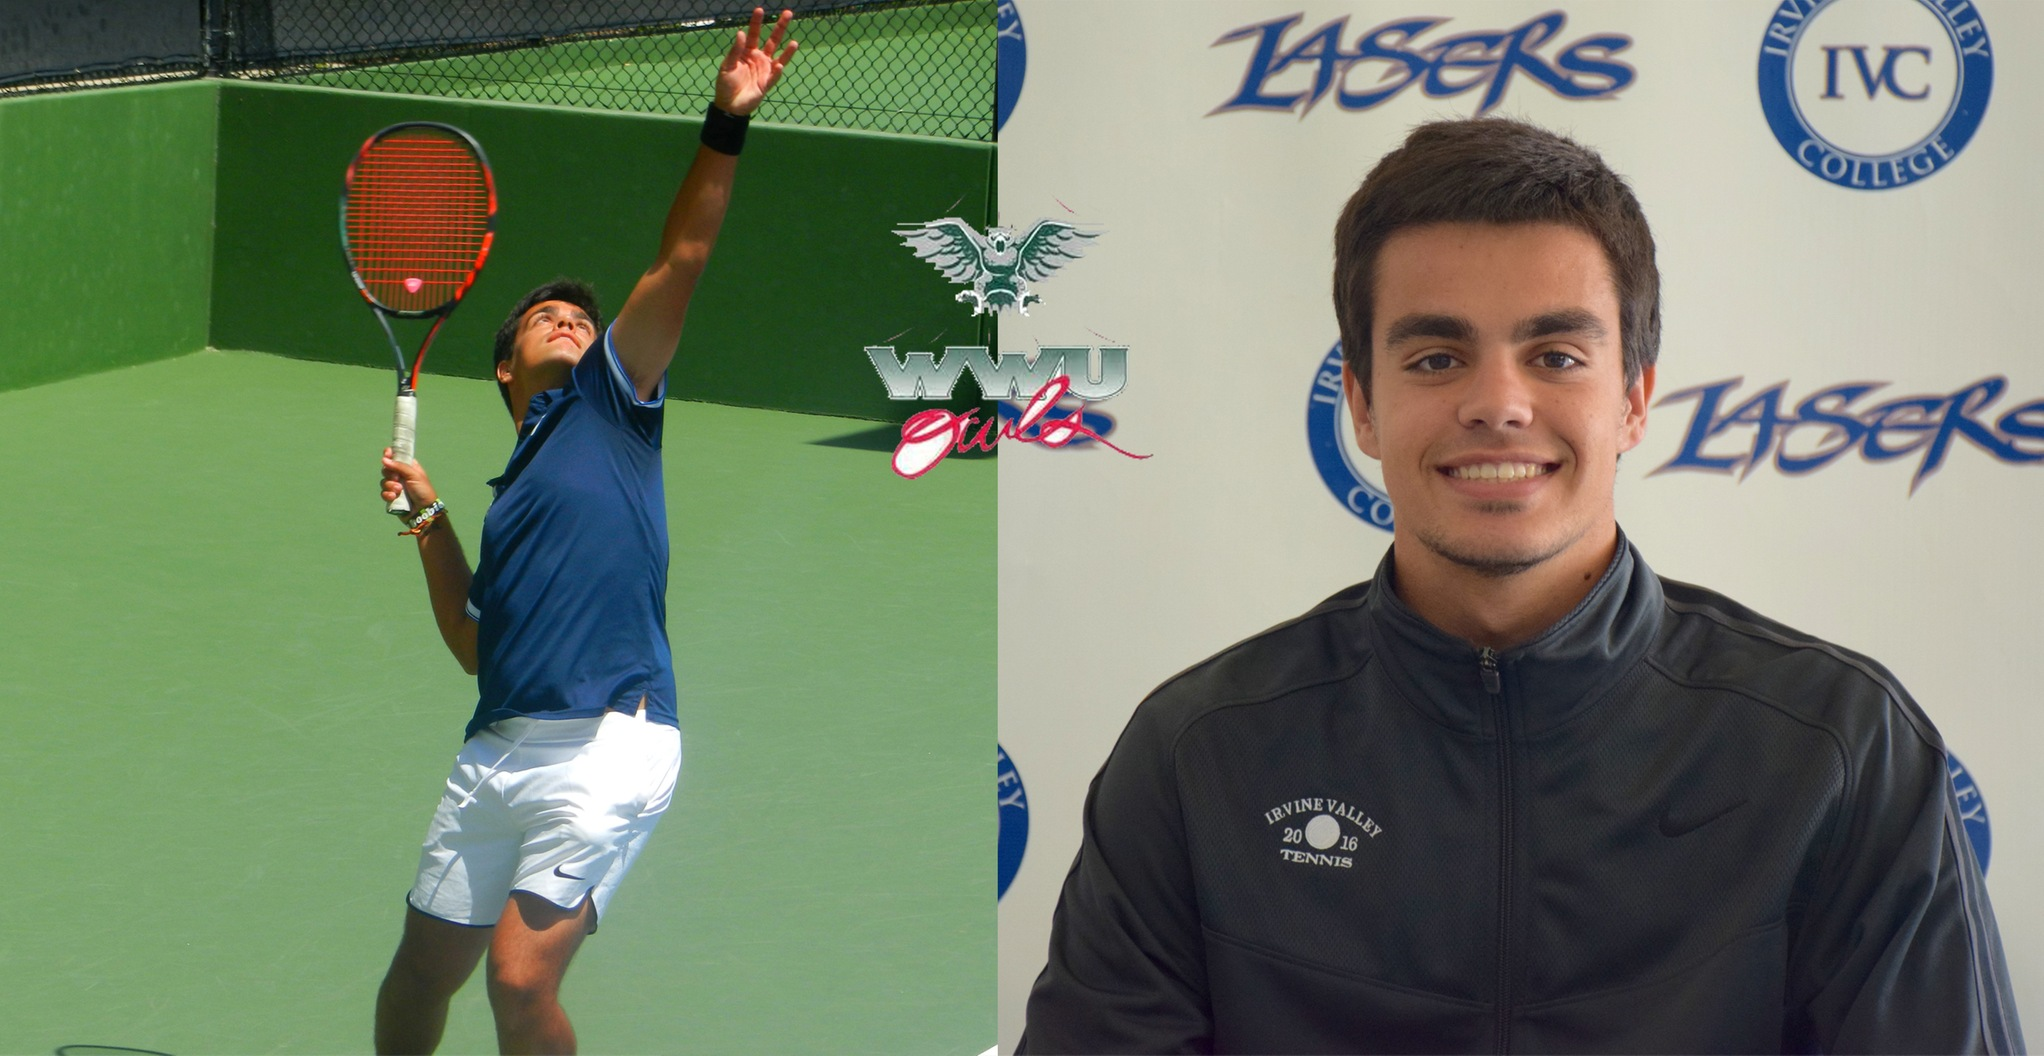 Former IVC star tennis player Javier Callejo named All-American